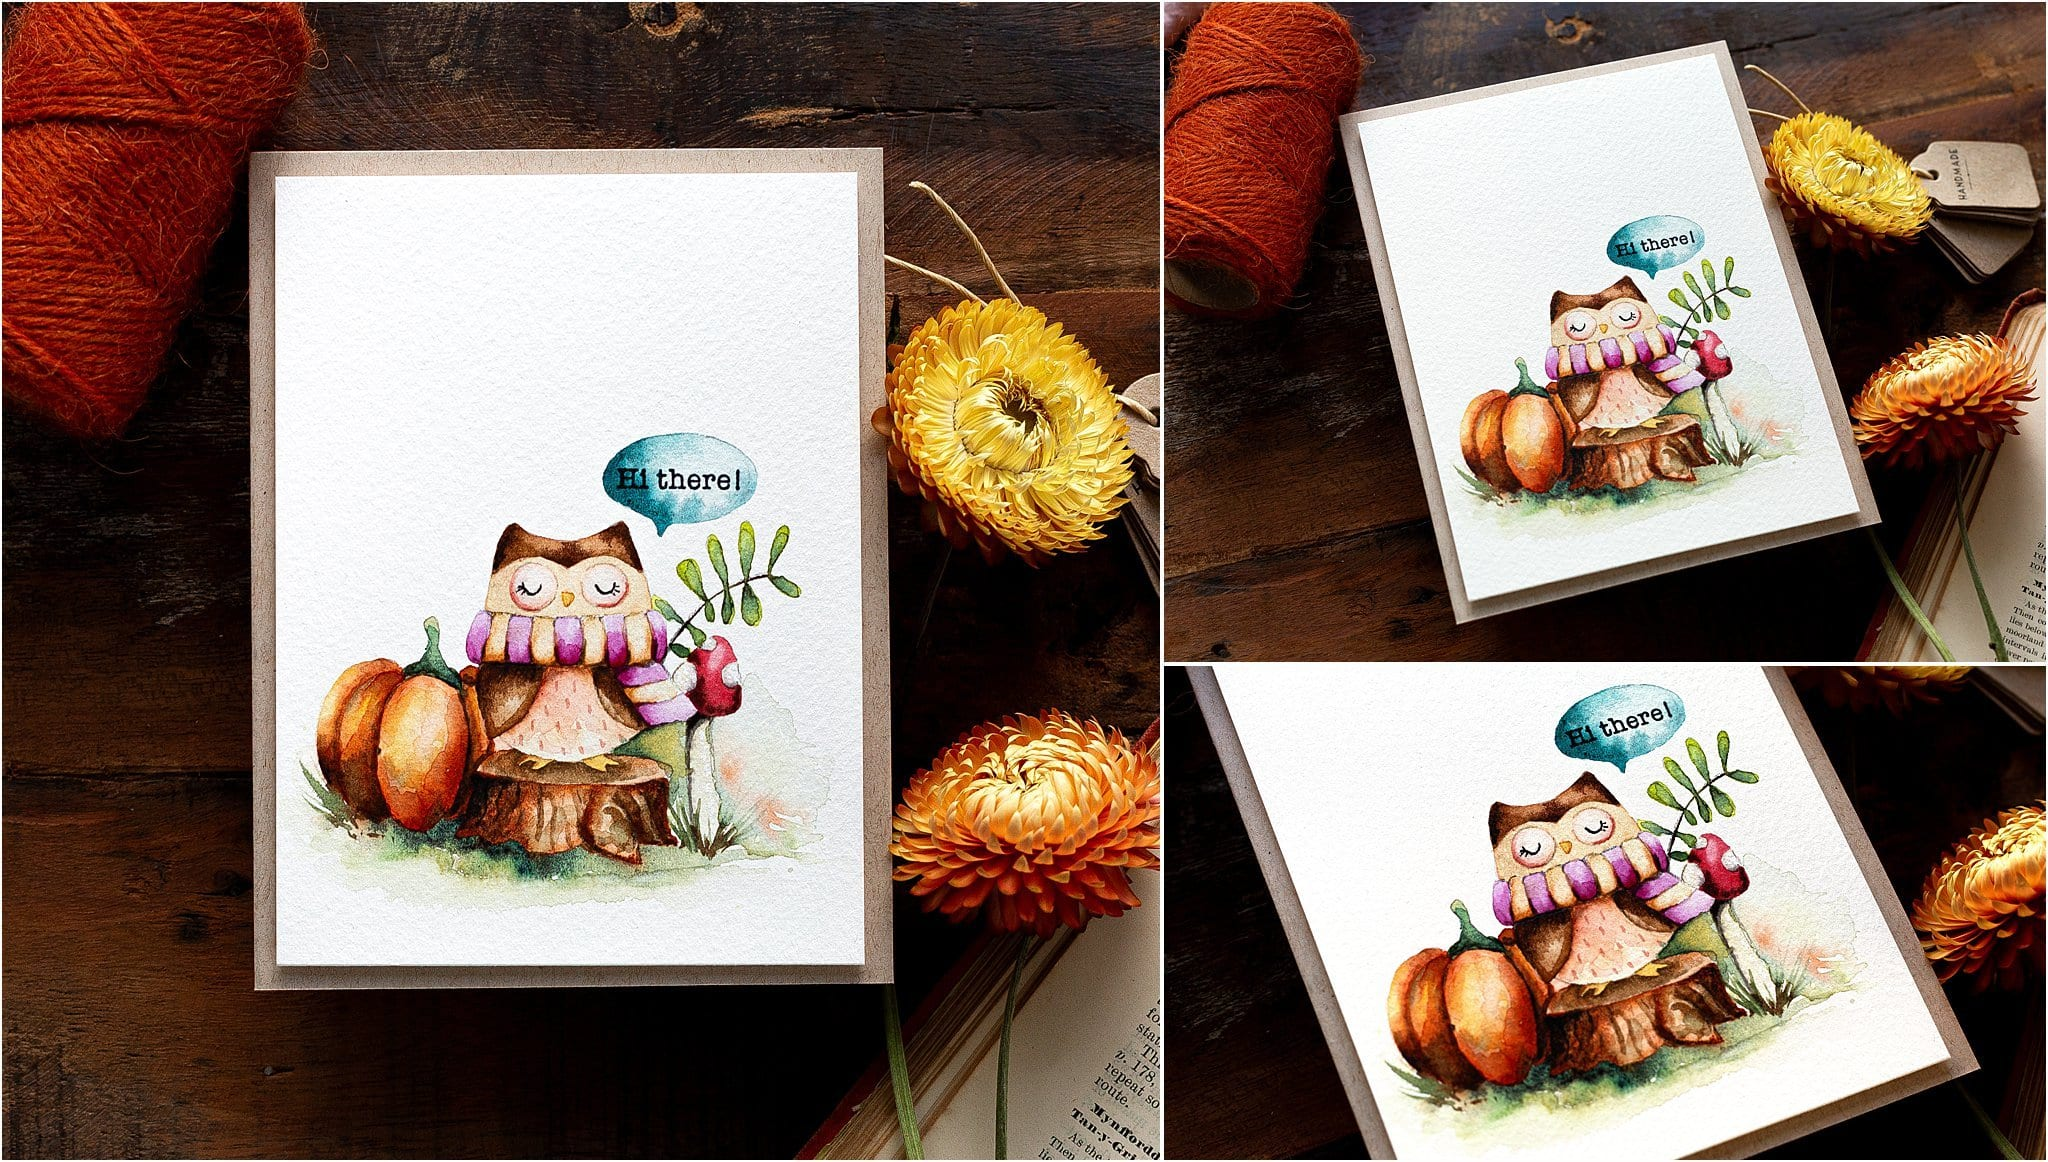 Watercoloured fall handmade card tutorial by Debby Hughes using supplies from Simon Says Stamp #watercolor #homemade